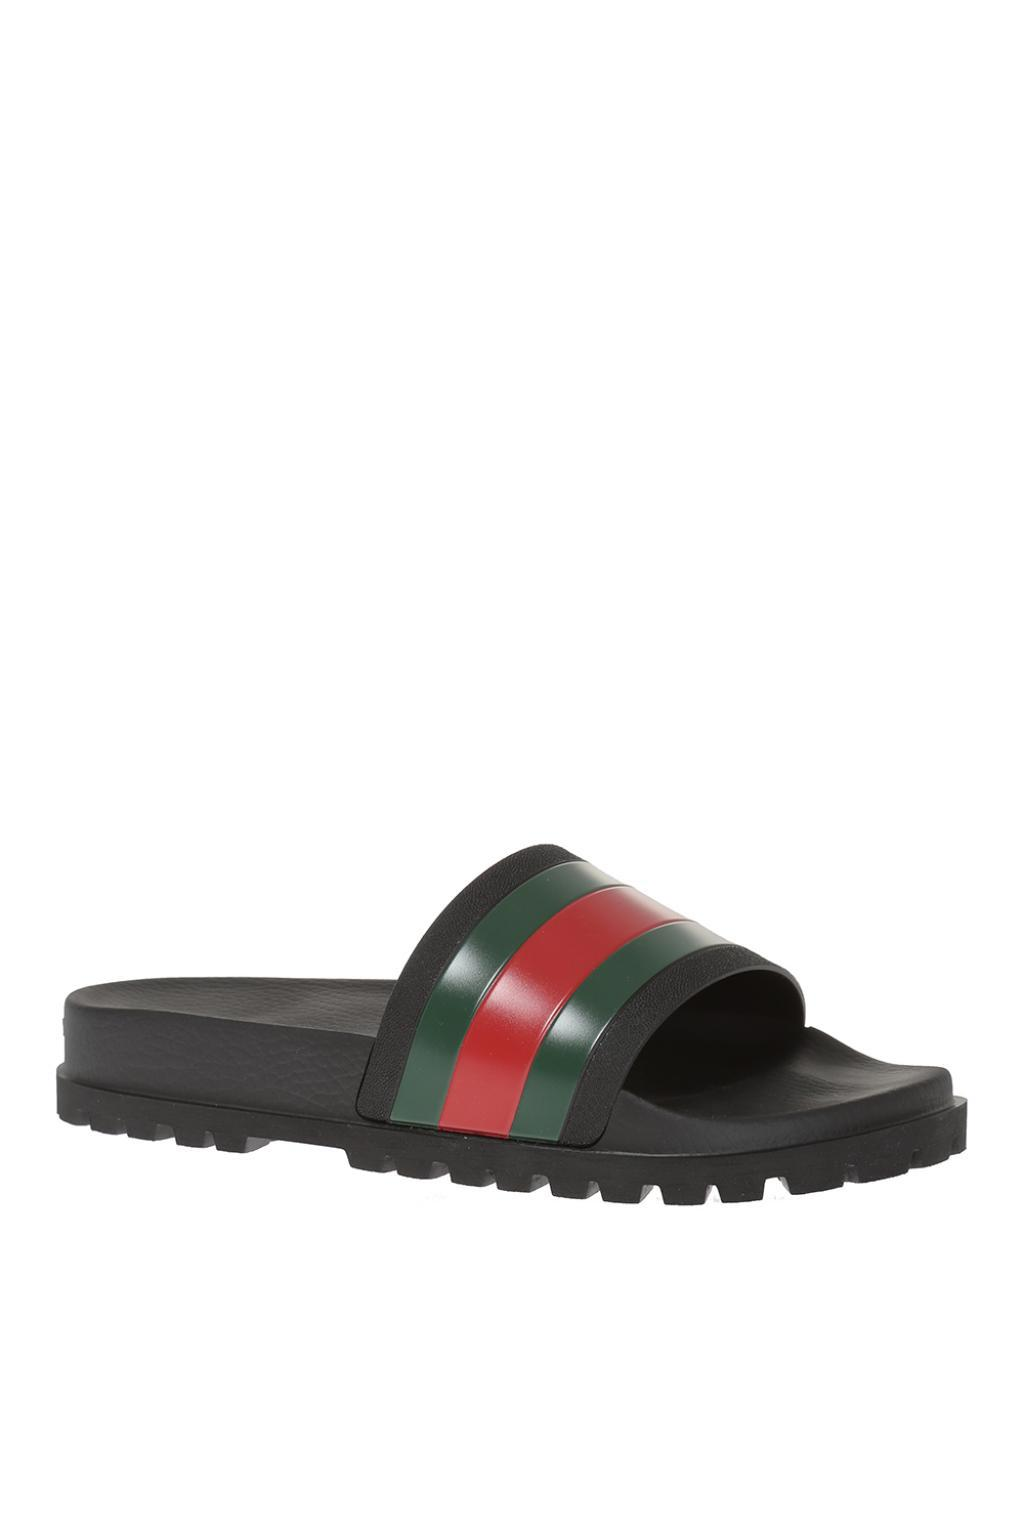 2df44a99785279 Gucci - Black Striped Web Rubber Slides for Men - Lyst. View fullscreen